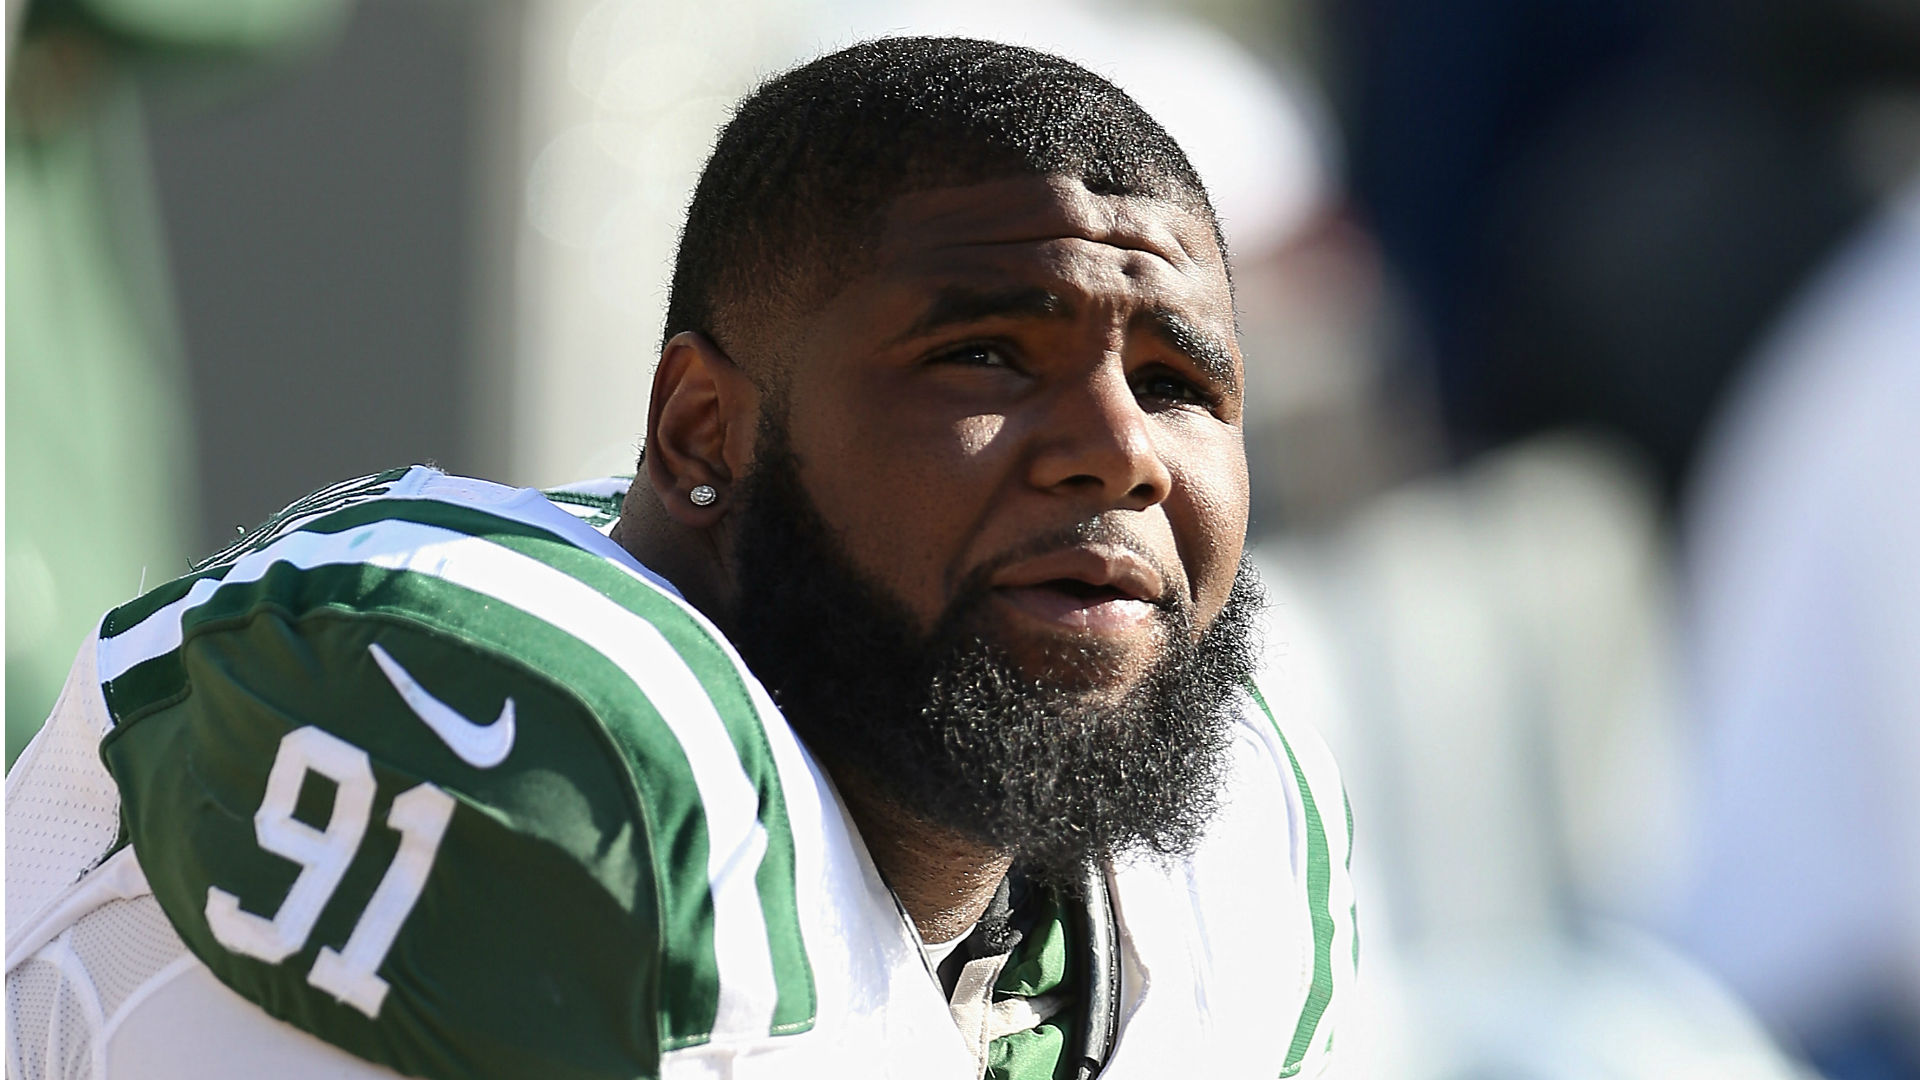 Jets' Sheldon Richardson charged with resisting arrest, multiple traffic violations